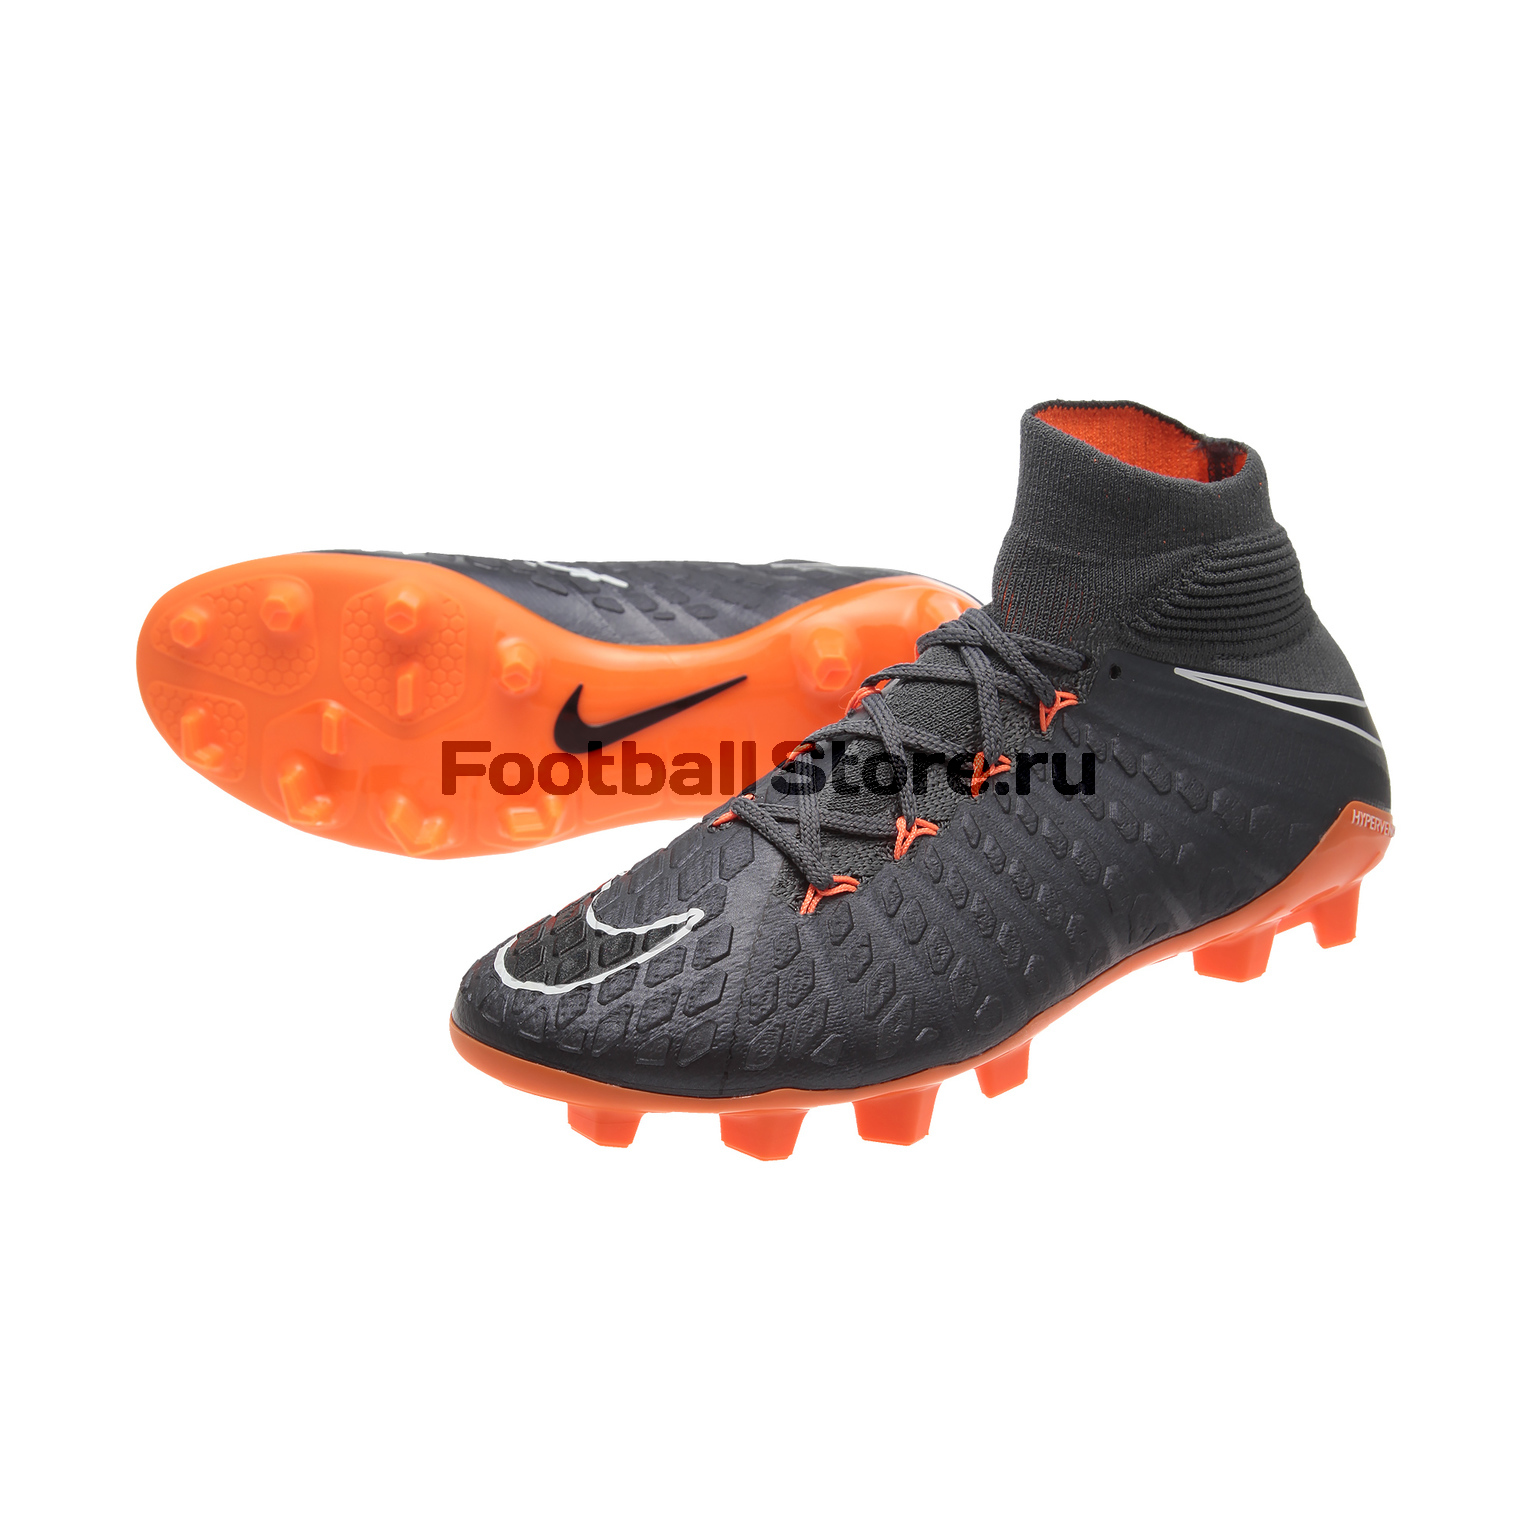 Бутсы Nike JR Phantom 3 Elite DF FG AH7292-081 детские бутсы nike бутсы nike jr phantom 3 elite df fg ah7292 081